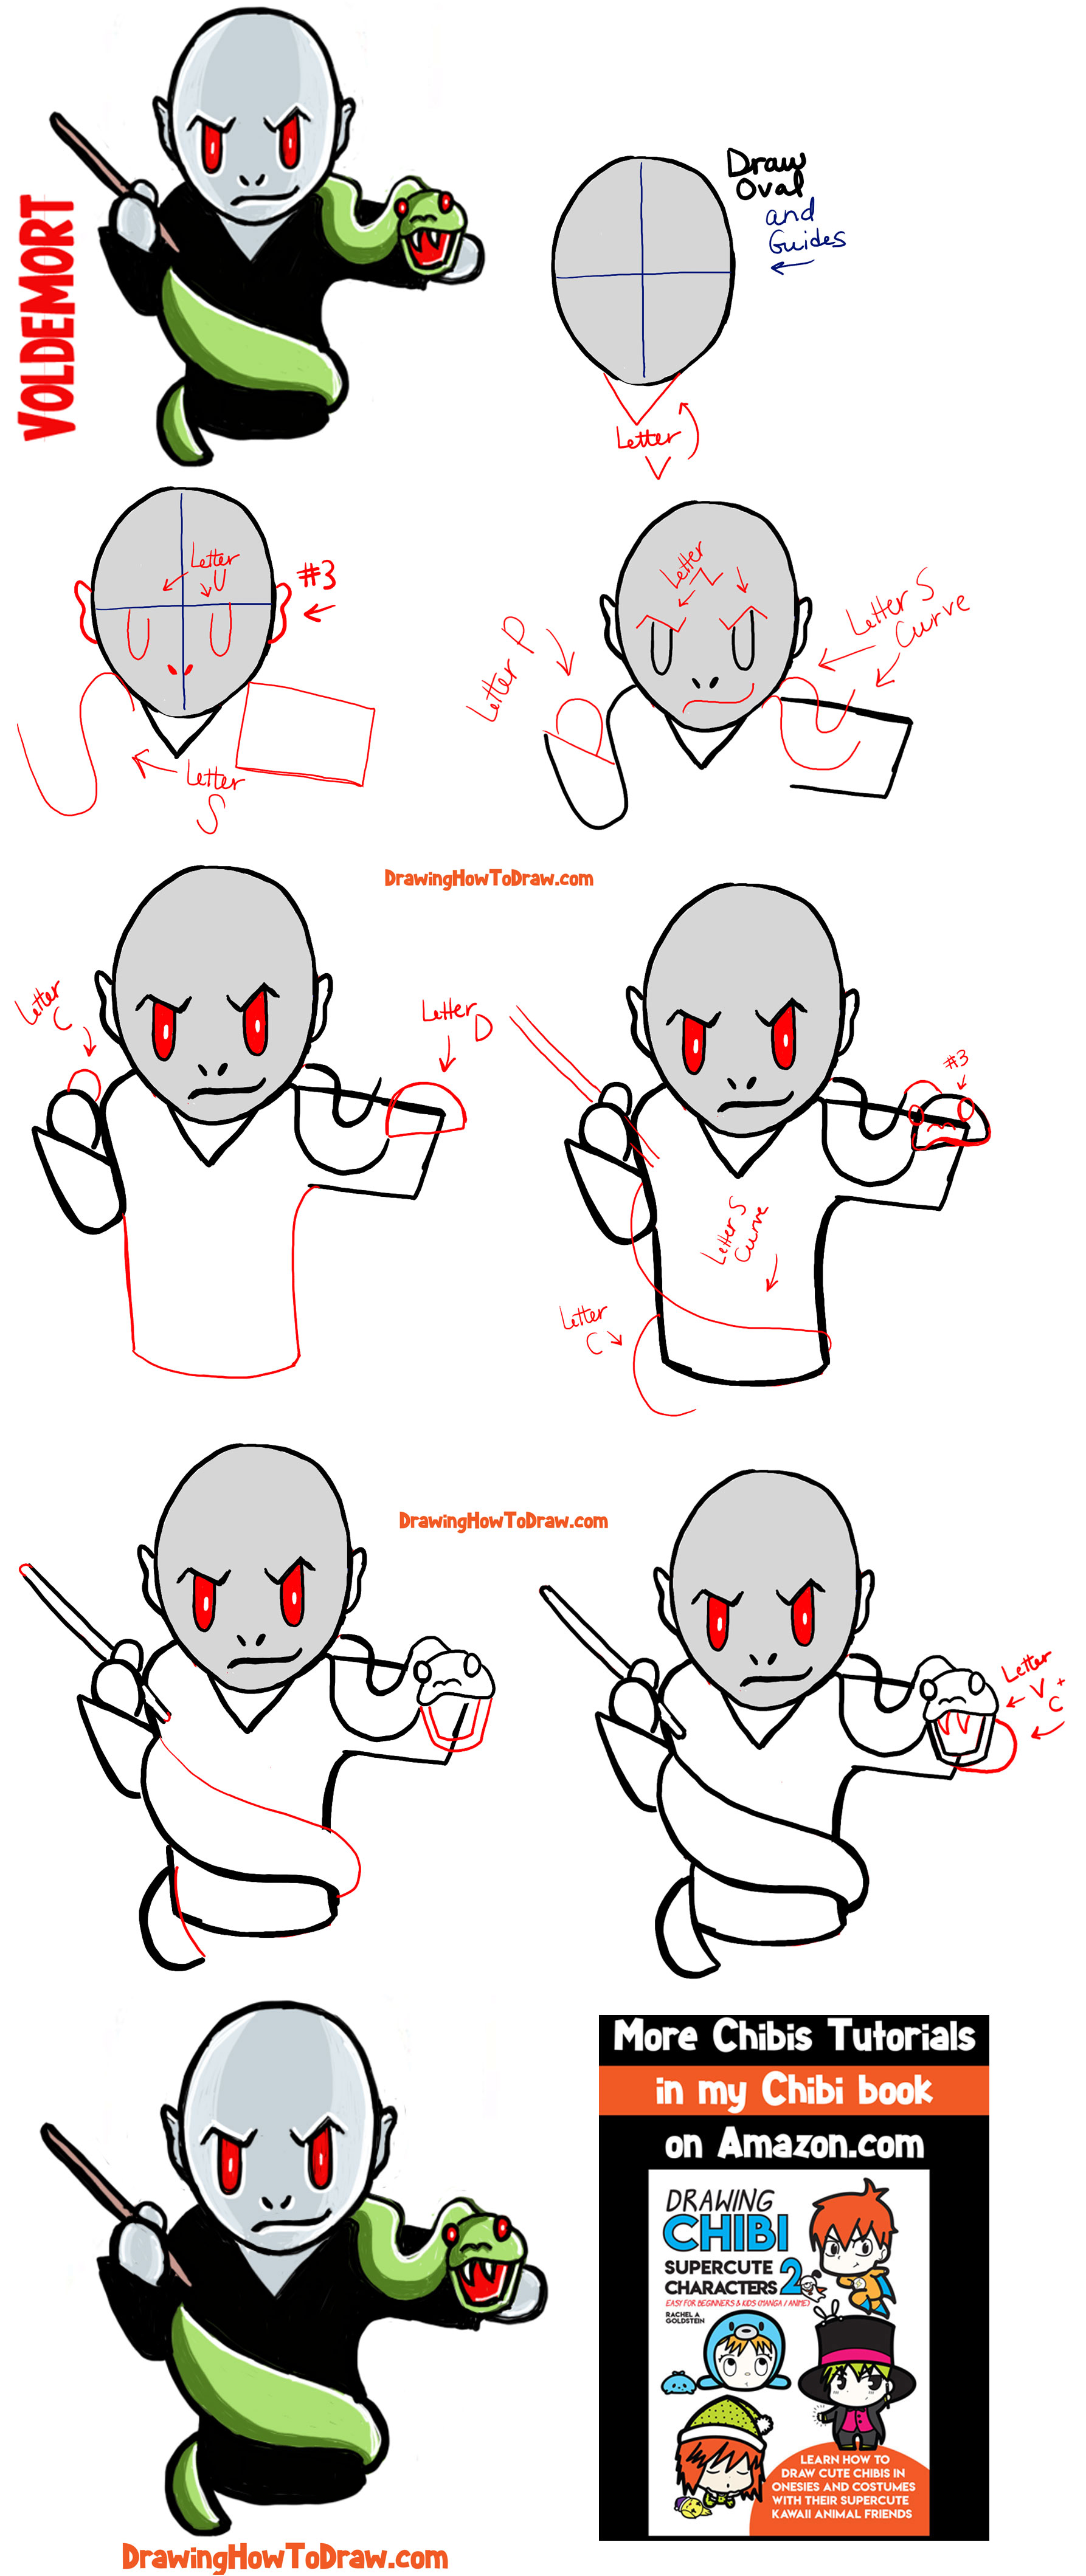 How to Draw Cute Chibi Voldemort from Harry Potter with Simple Easy Step by Step Drawing Tutorial